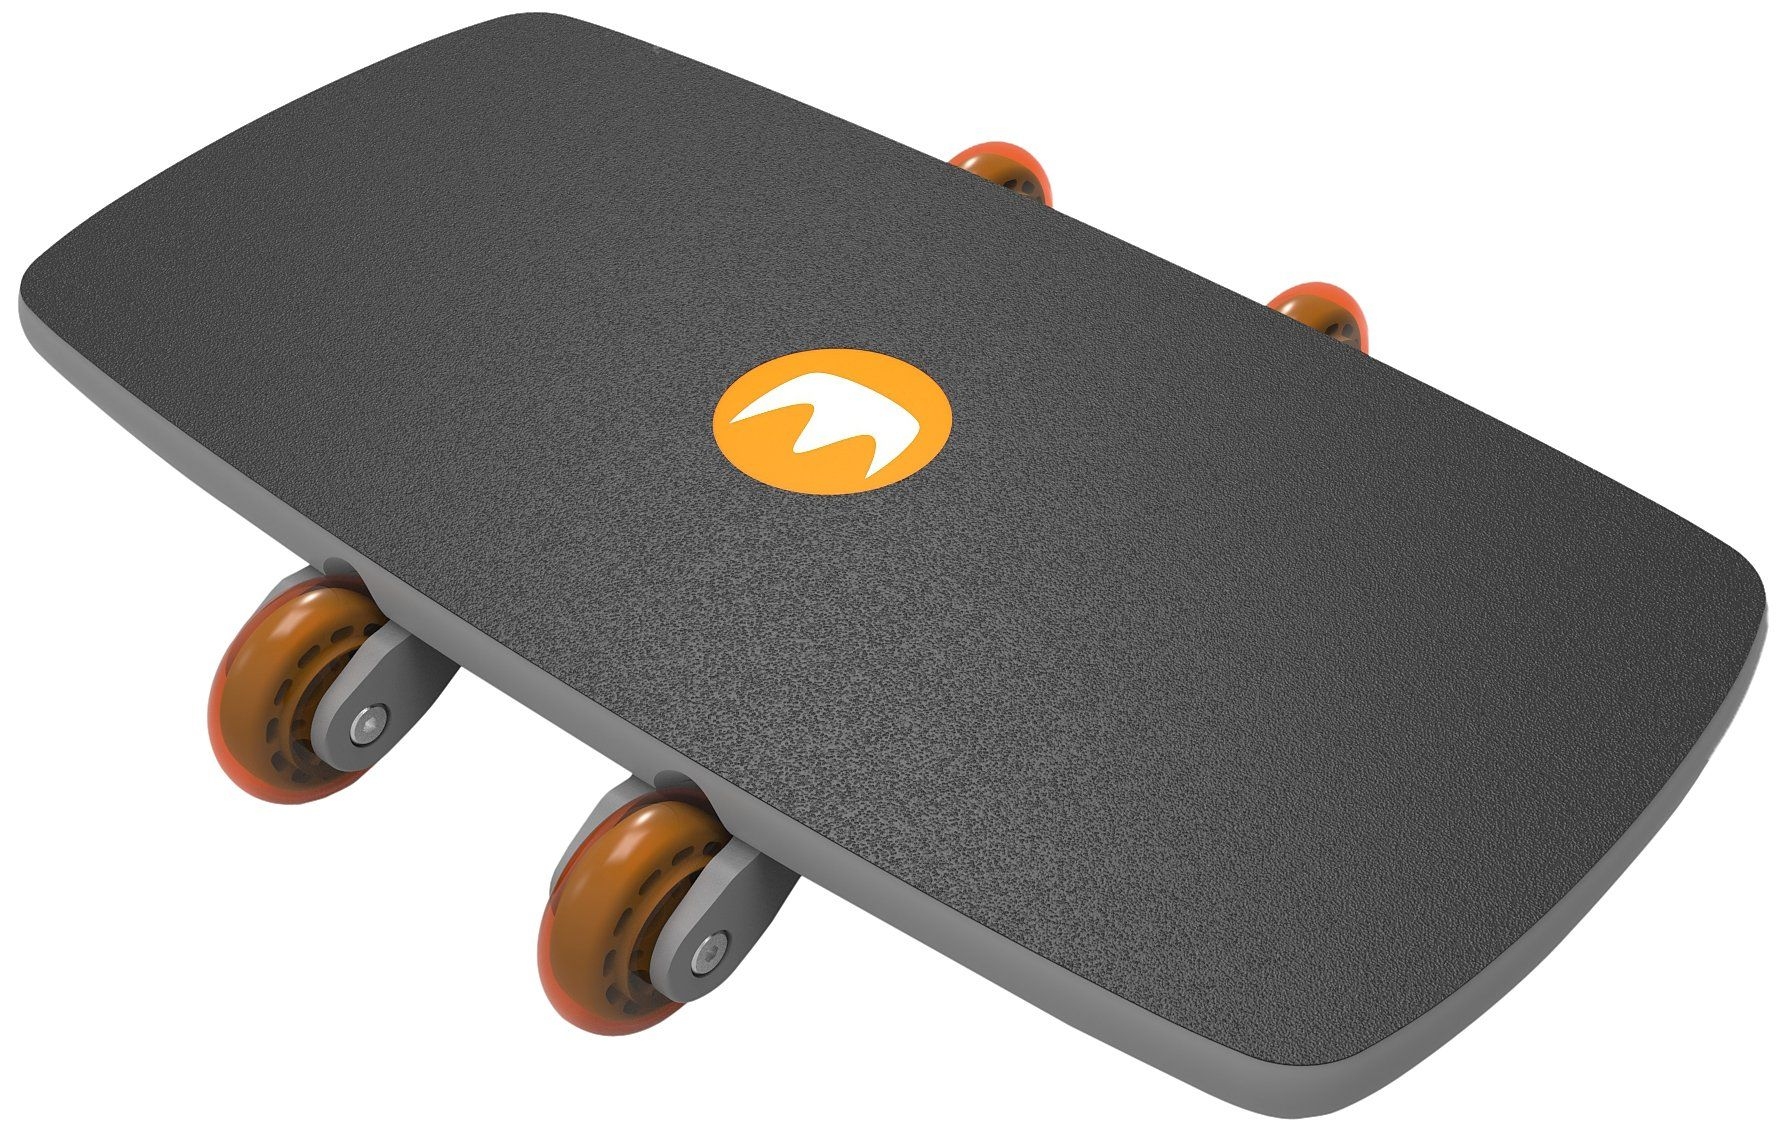 Modern Movement Roll-Board Extension Trainer, Dark Grey/Orange. Low step-on height for more natural movements. Non-marking urethane wheels can be used on hardwood floors or carpets. Workout poster and DVD included.